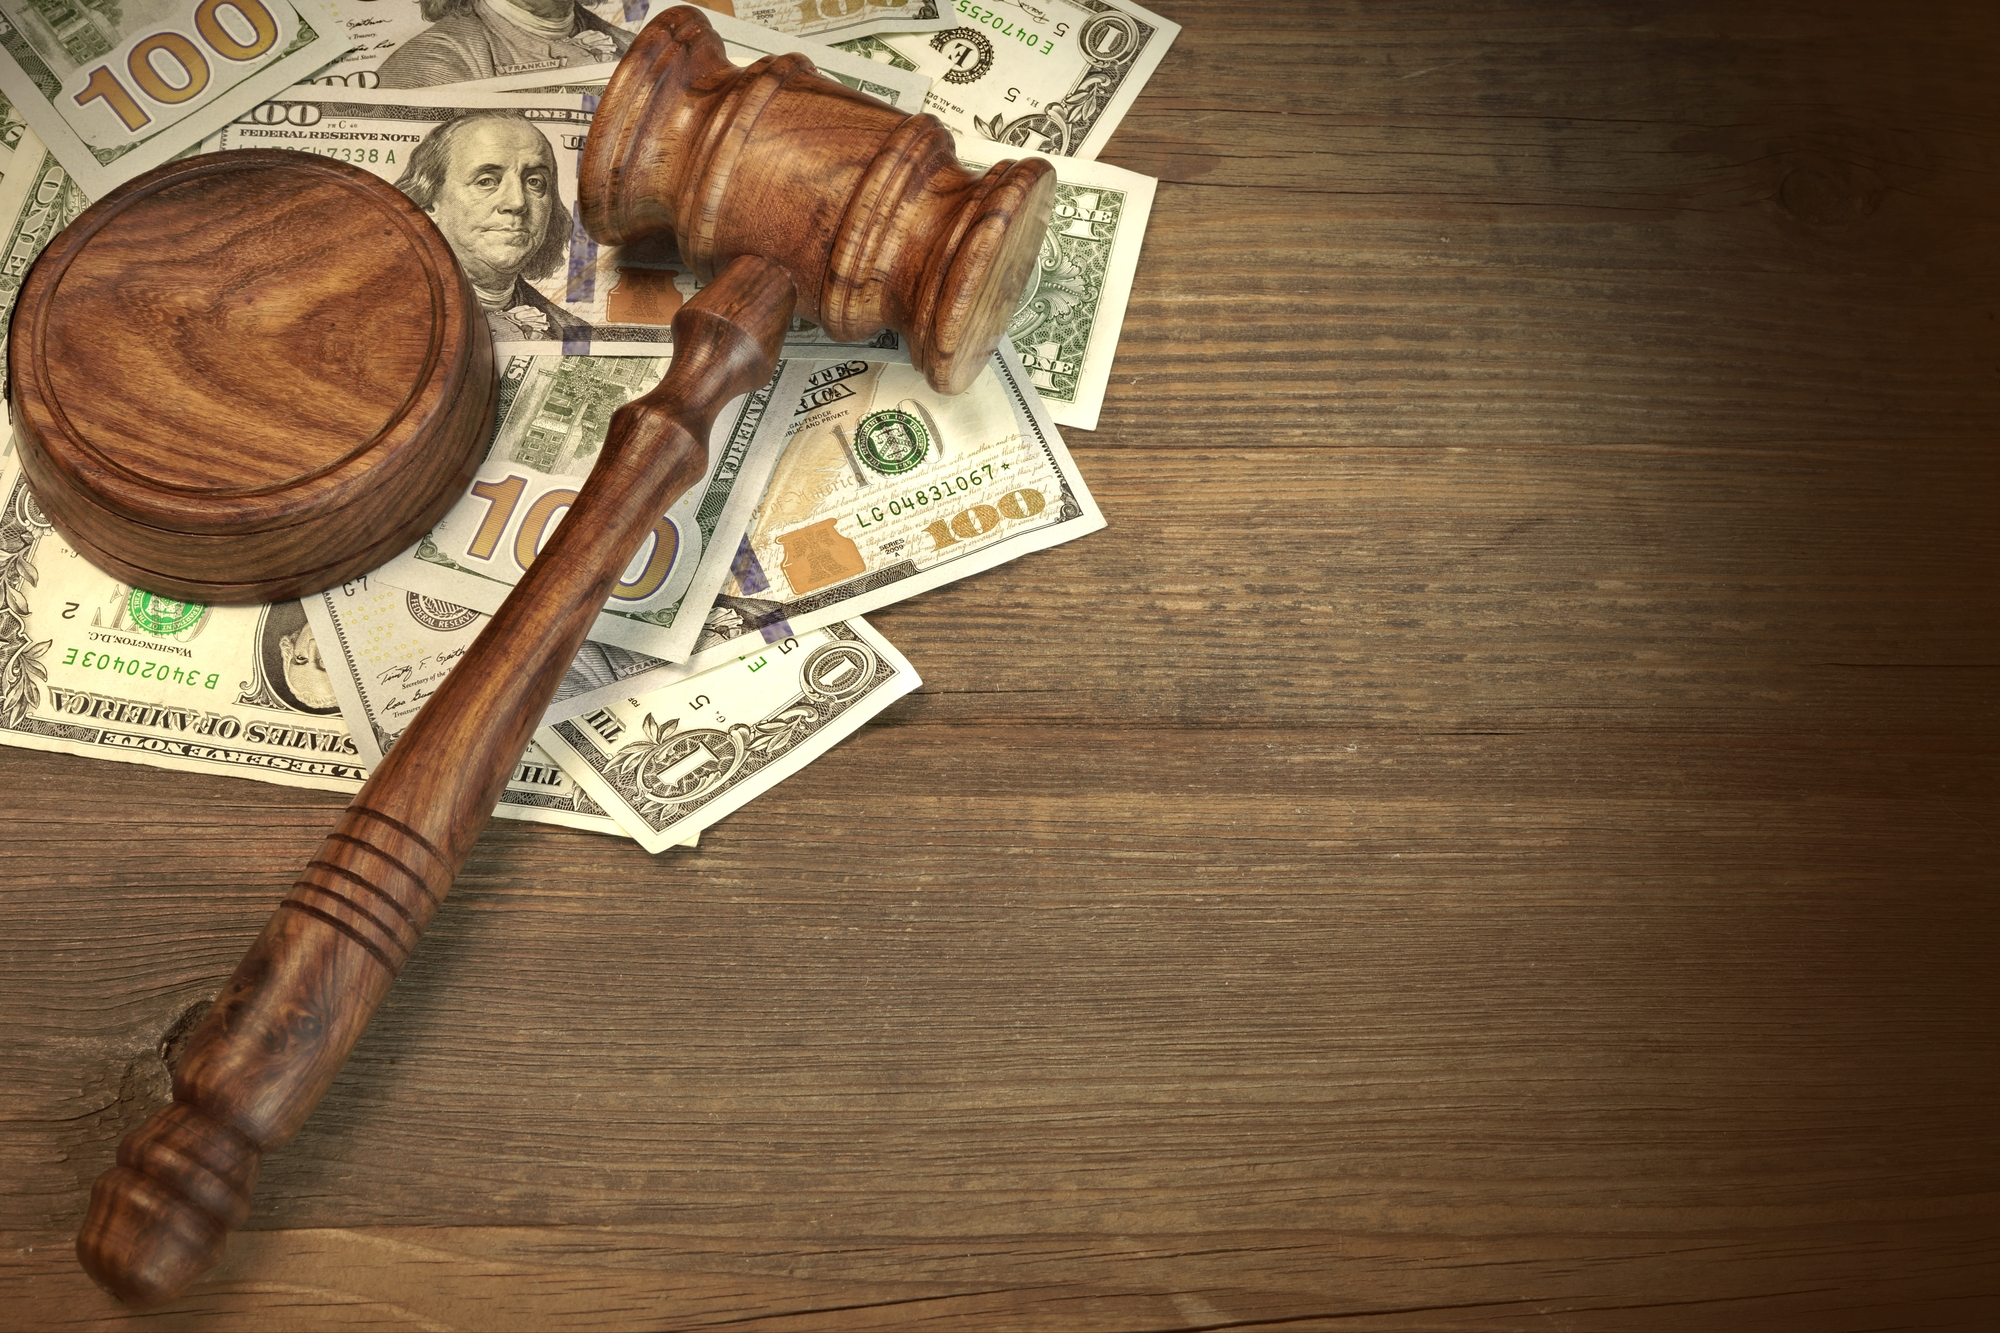 how much are lawsuit loan fees?